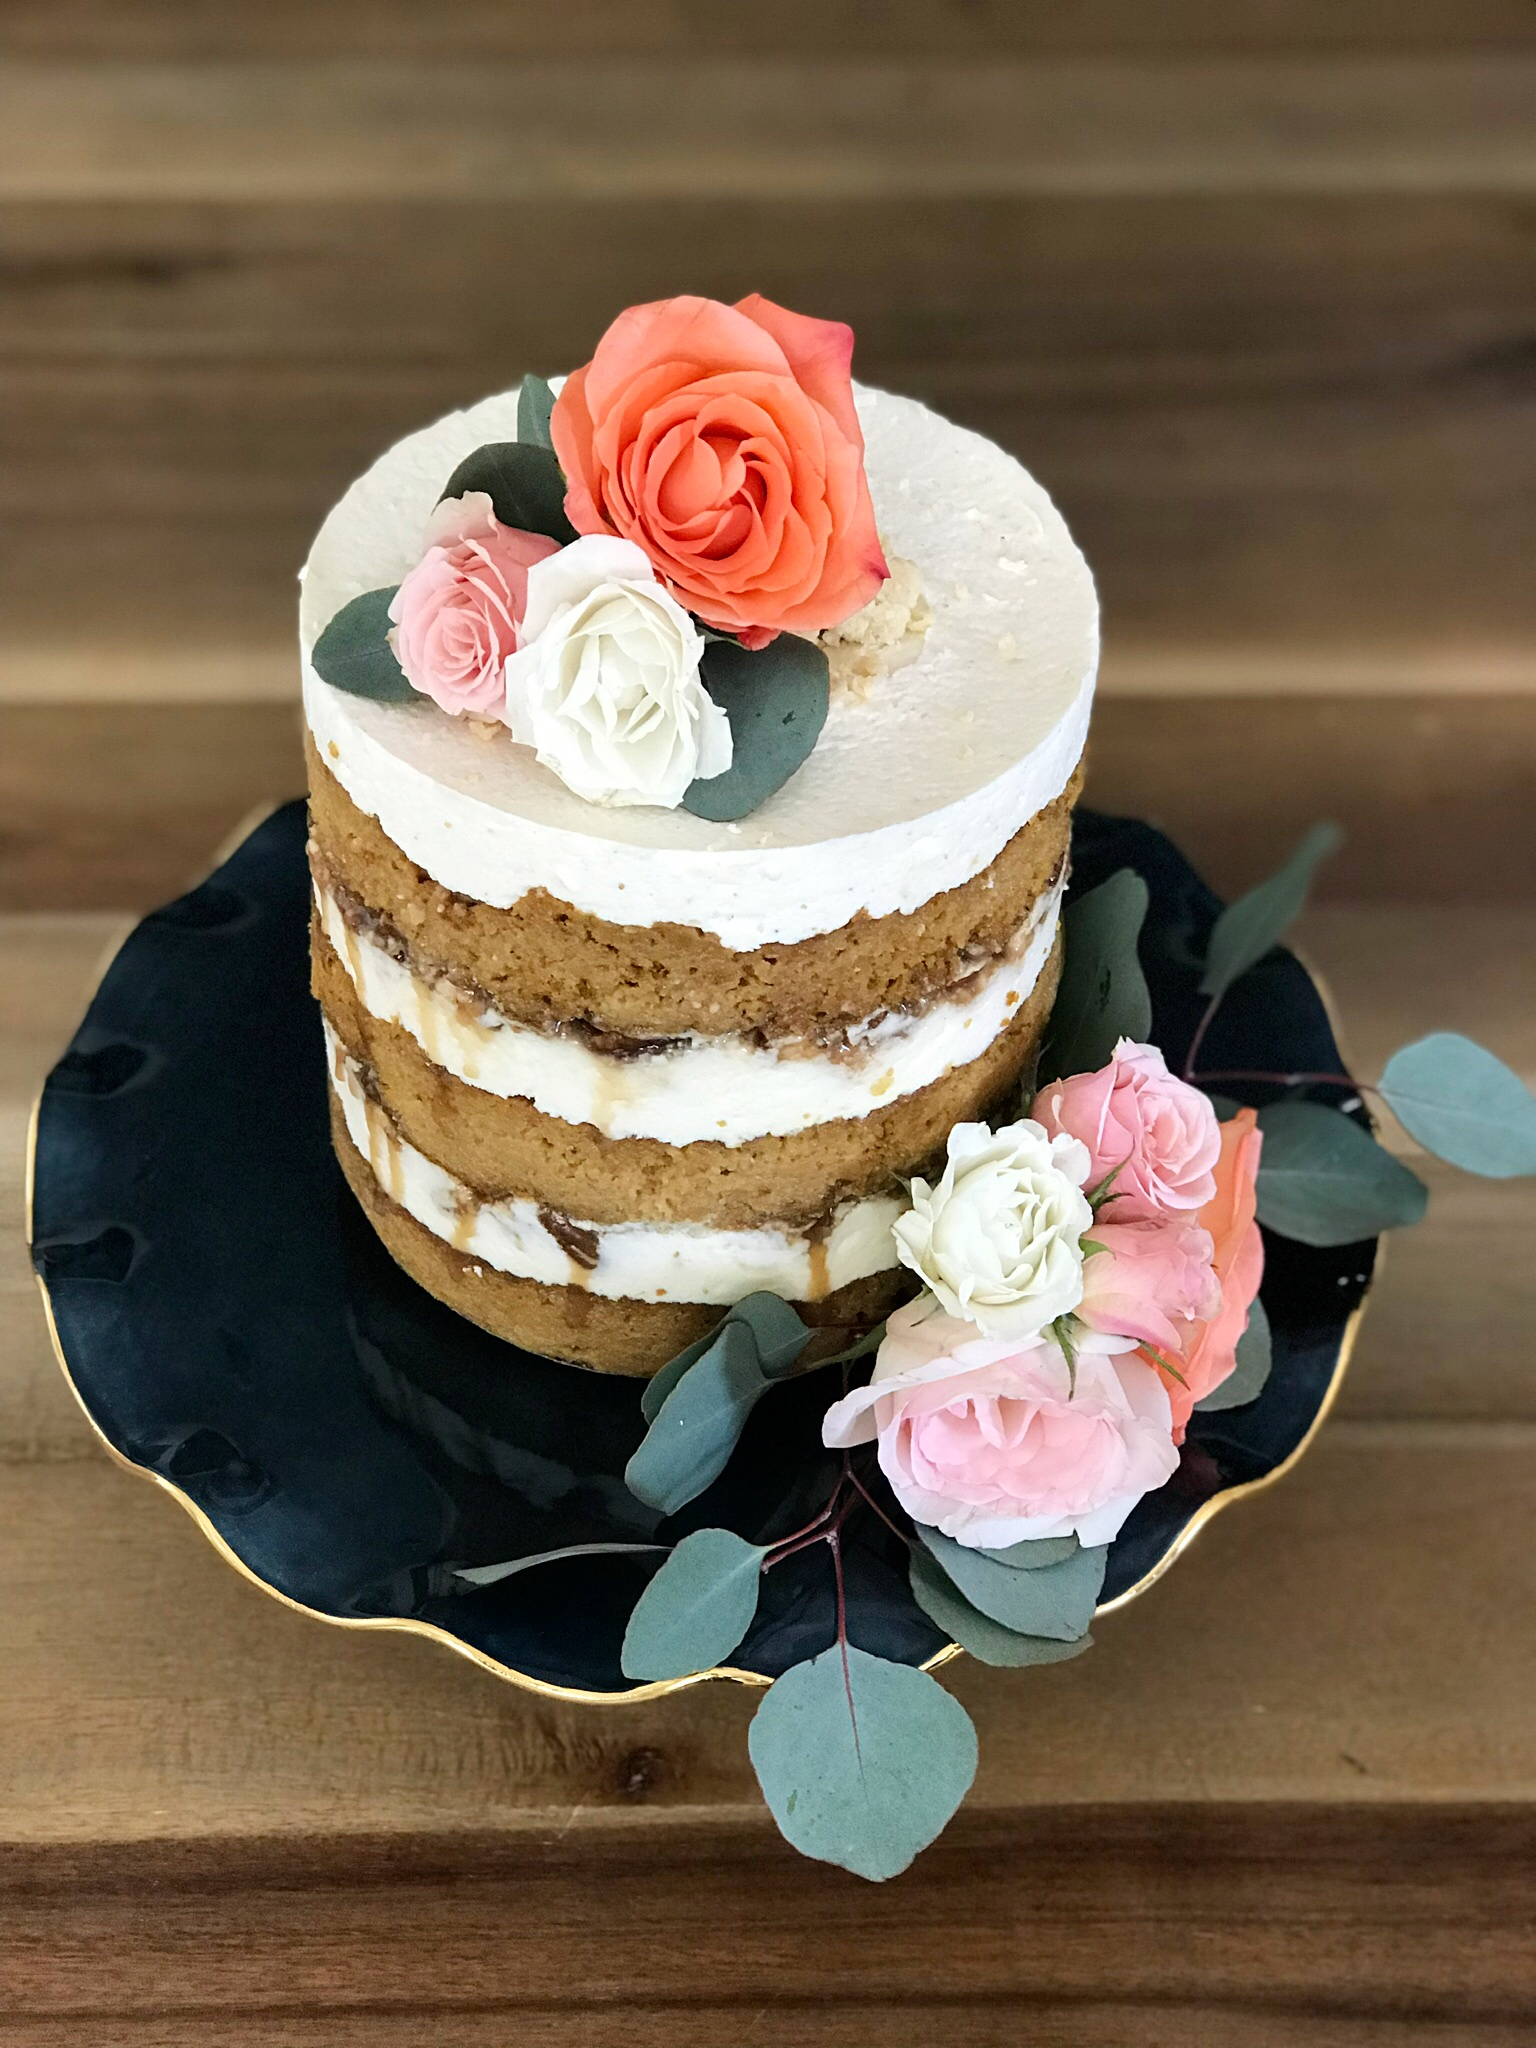 Shop our cake stands  here .